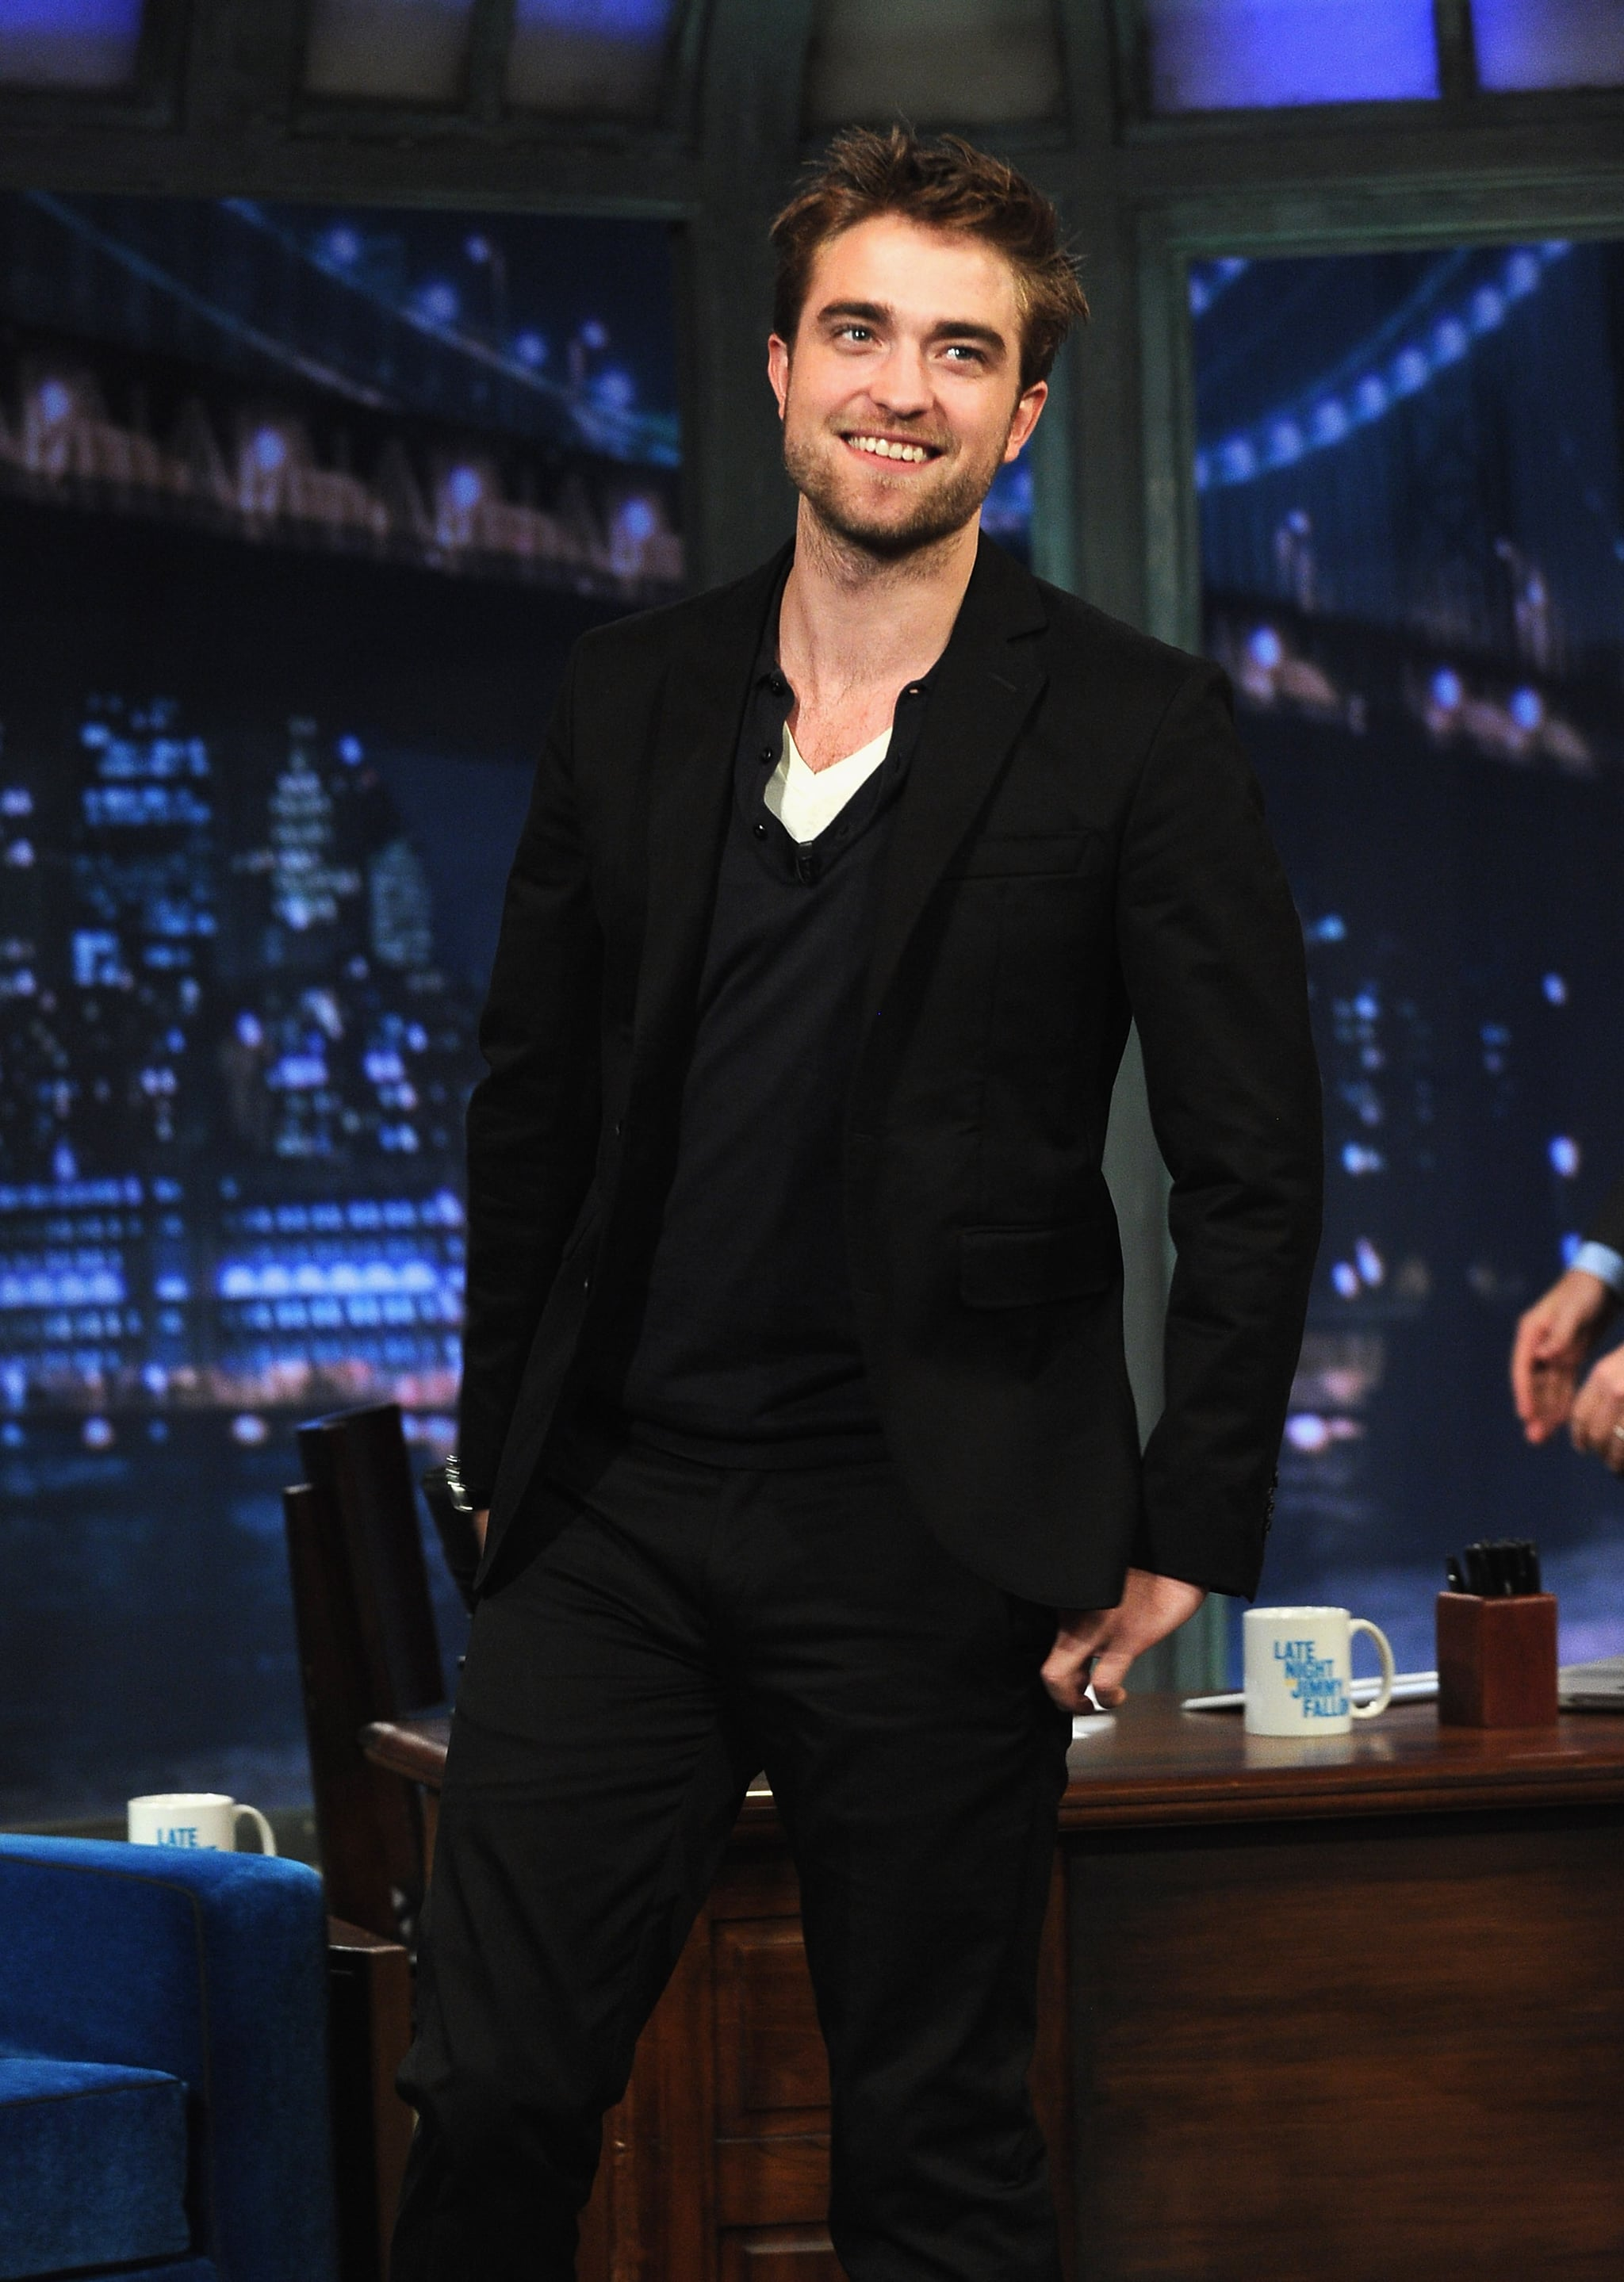 Rob dressed in black for his late-night appearance.